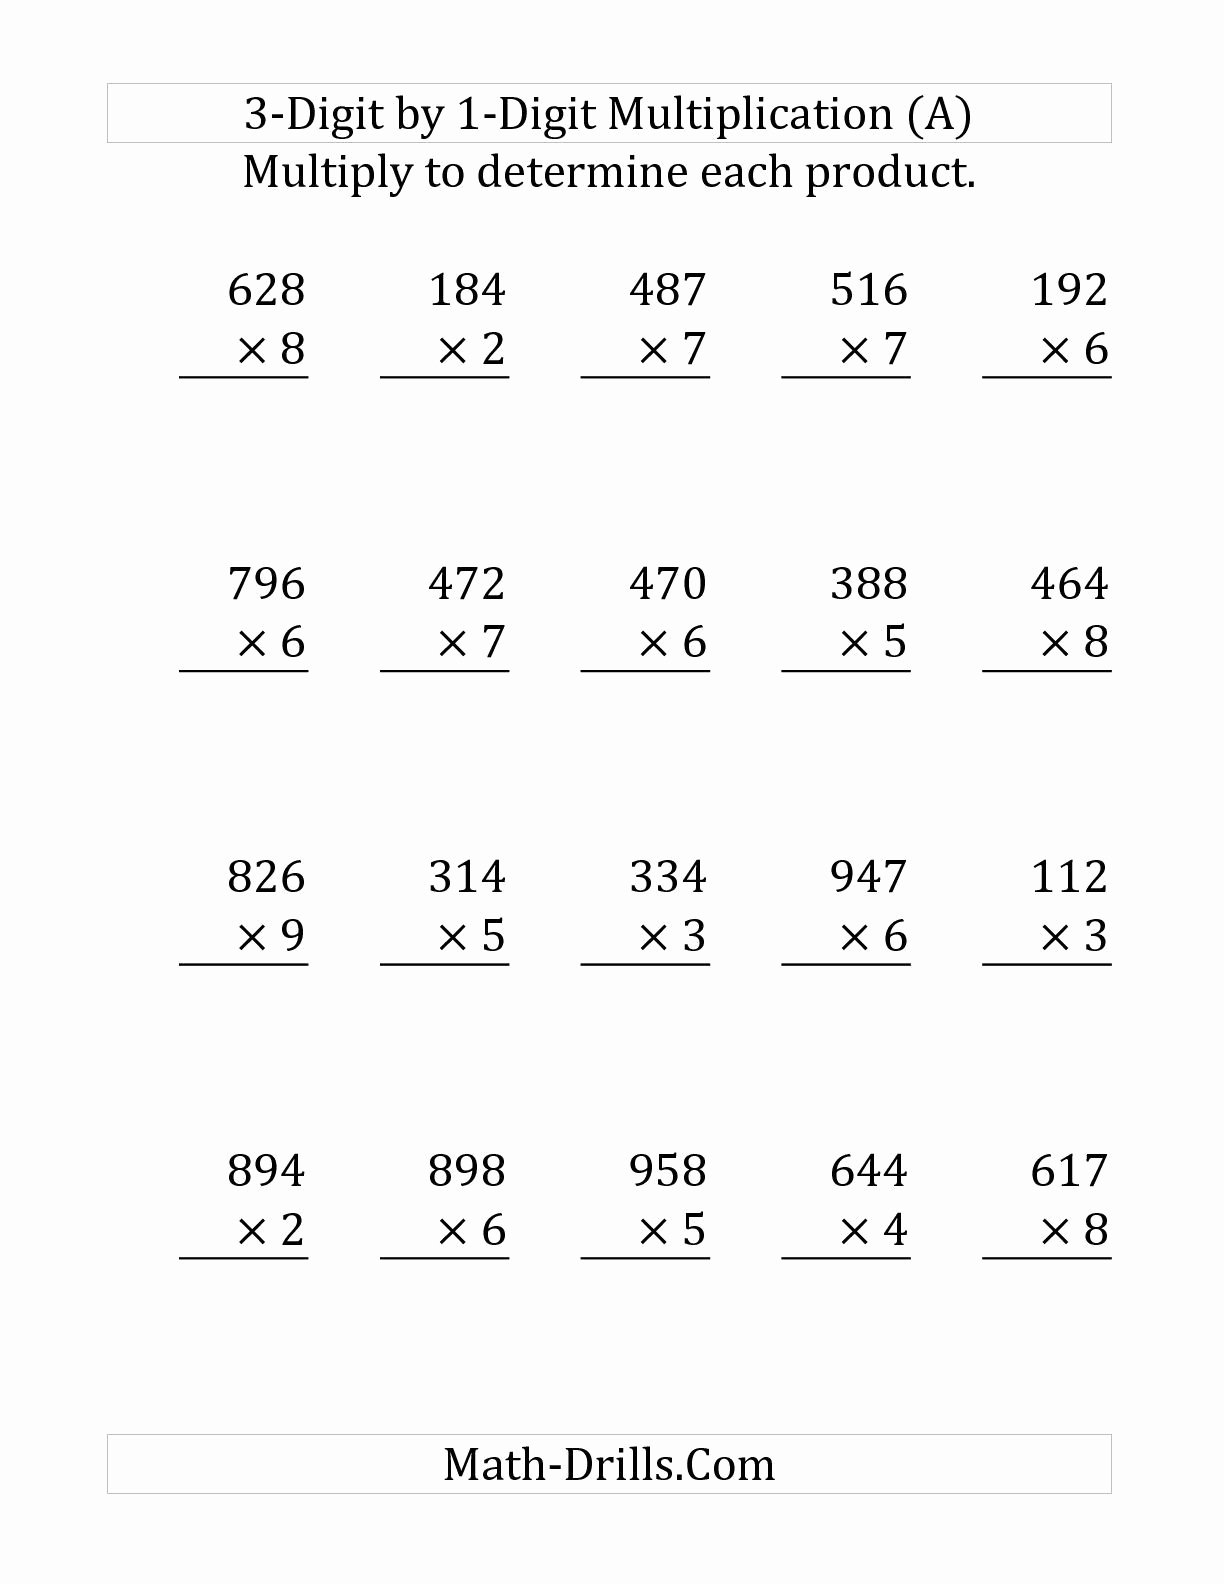 4 Digit by 1 Digit Multiplication Worksheets Best Of the Multiplying A 3 Digit Number by A 1 Digit Number